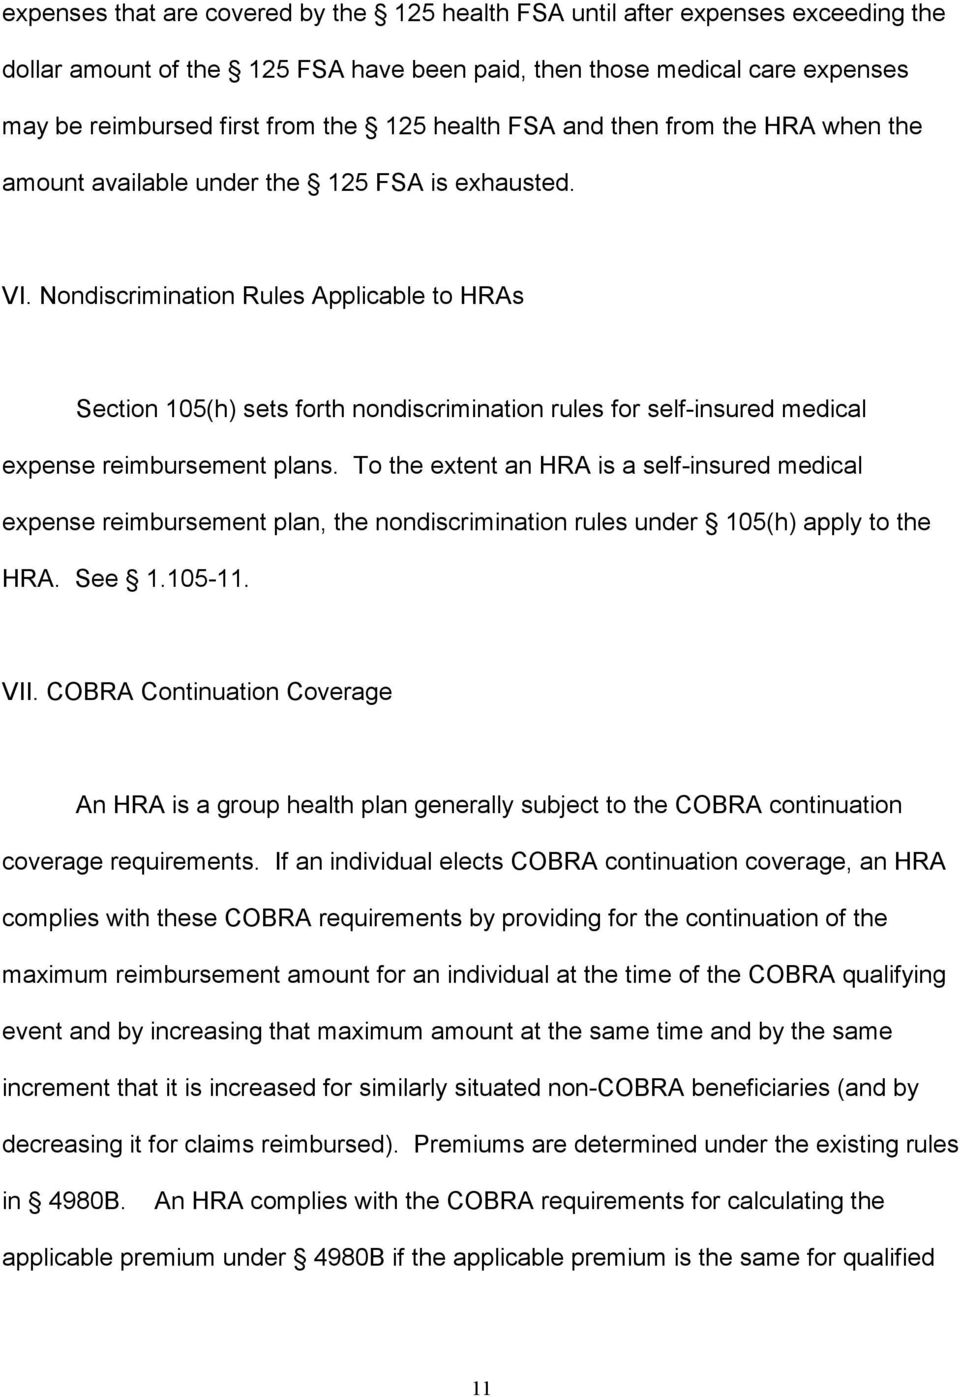 Nondiscrimination Rules Applicable to HRAs Section 105(h) sets forth nondiscrimination rules for self-insured medical expense reimbursement plans.